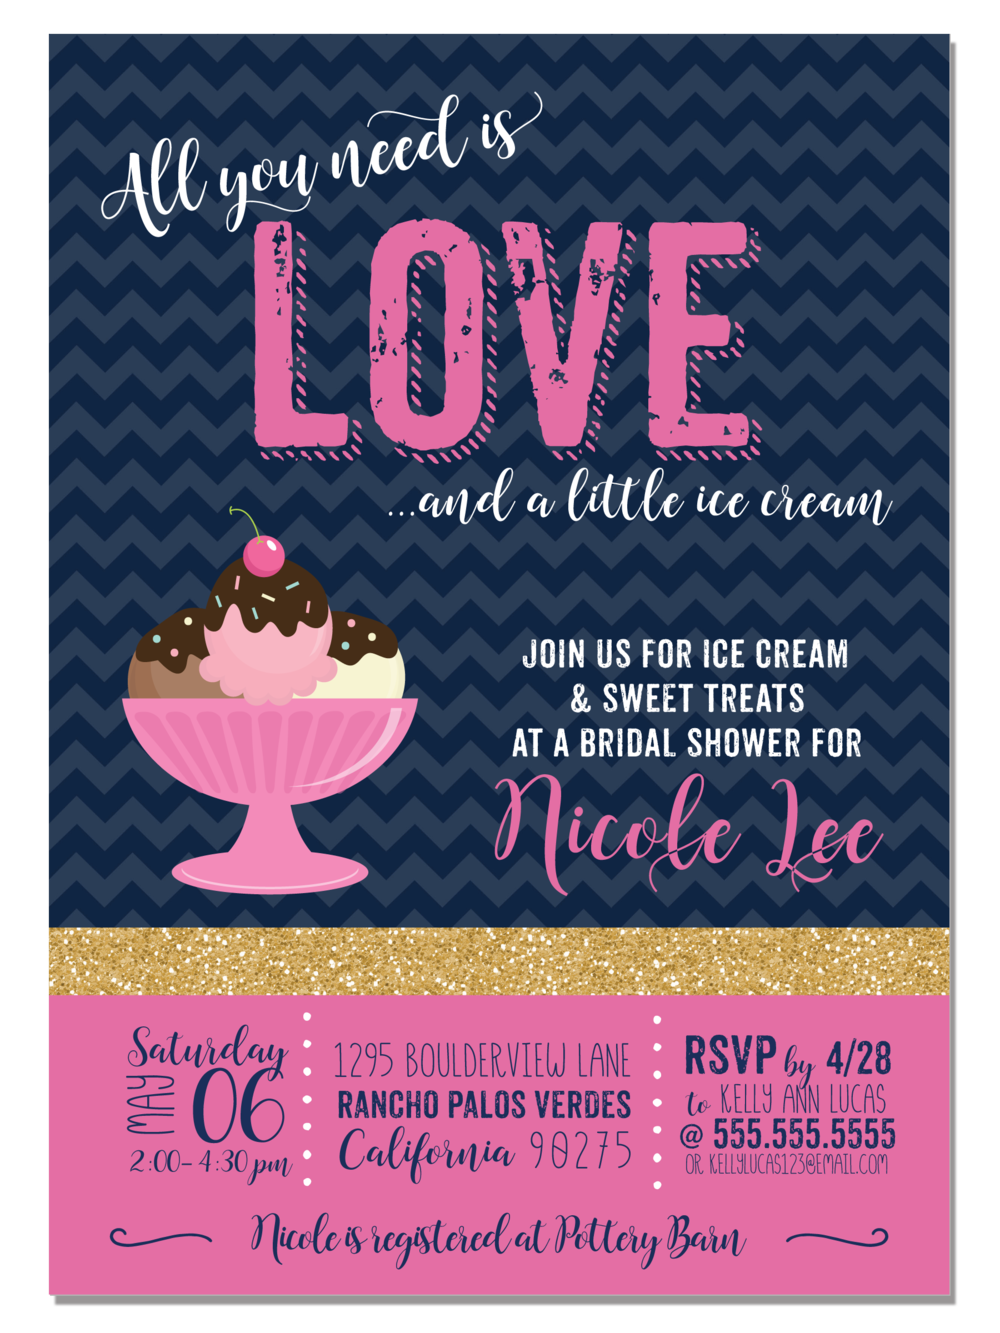 all you need is love digital bridal shower invitation